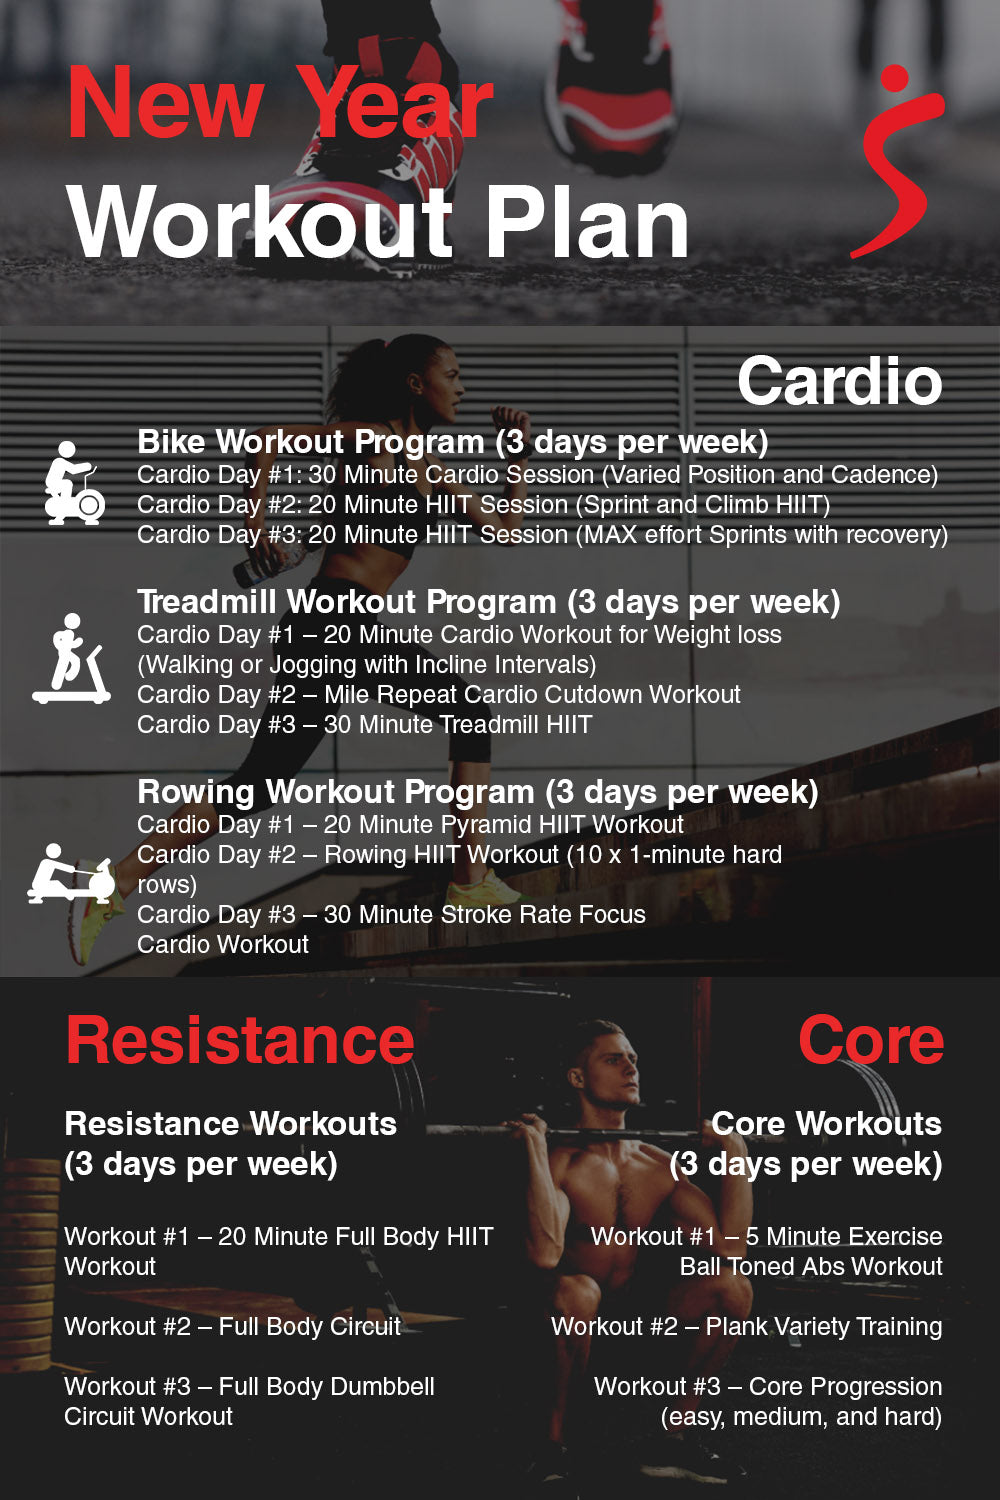 new year workout plan summary infographic